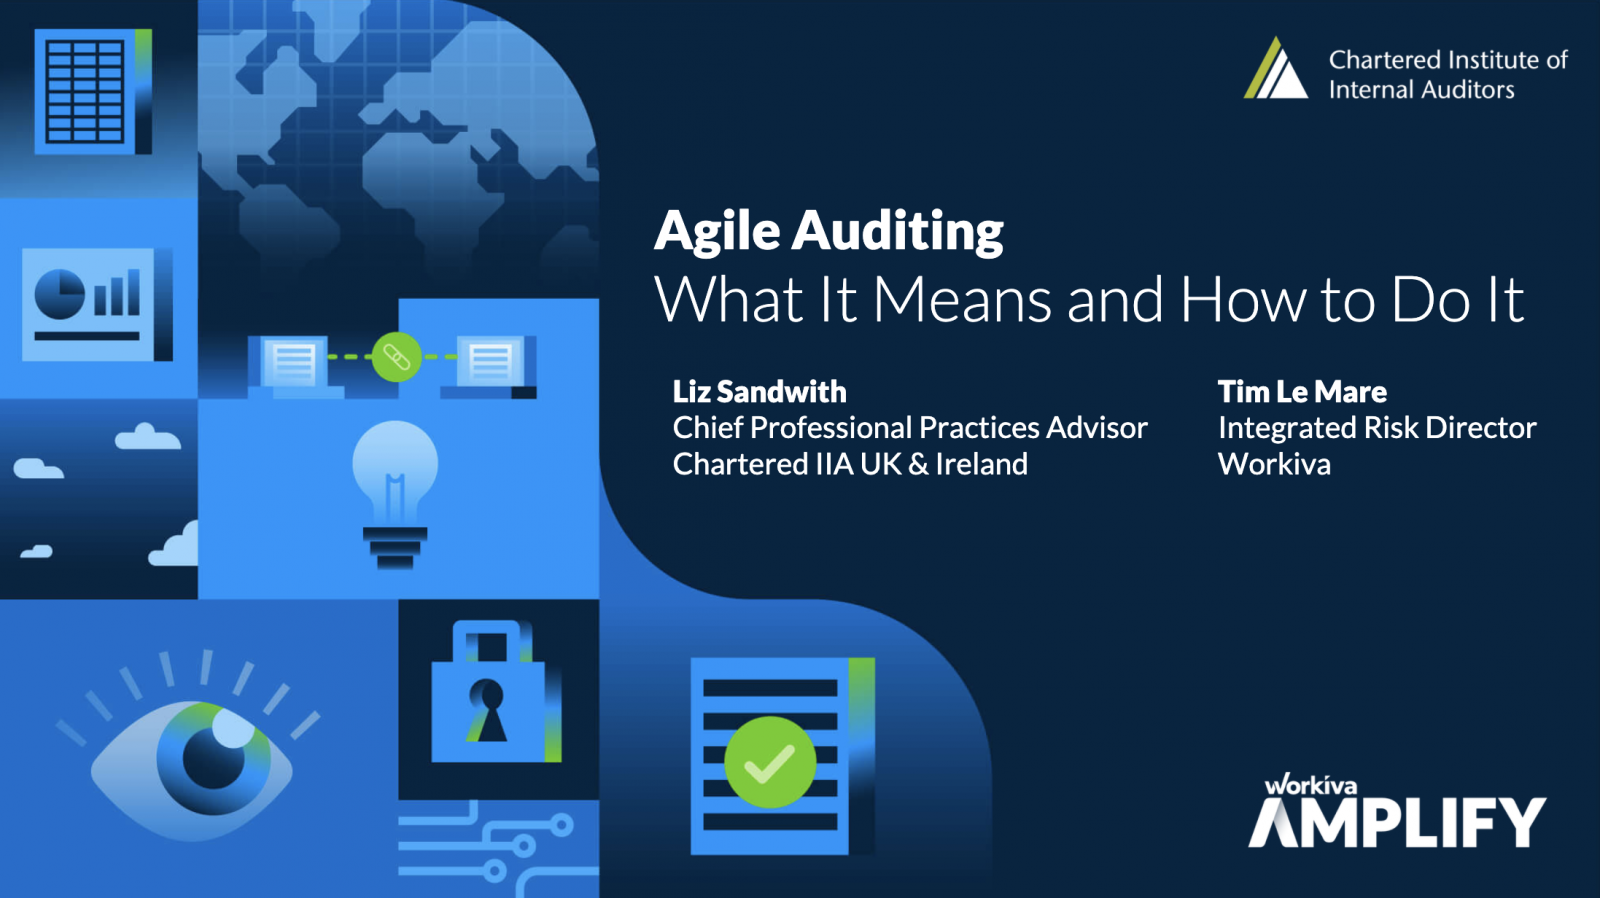 Agile Auditing webinar